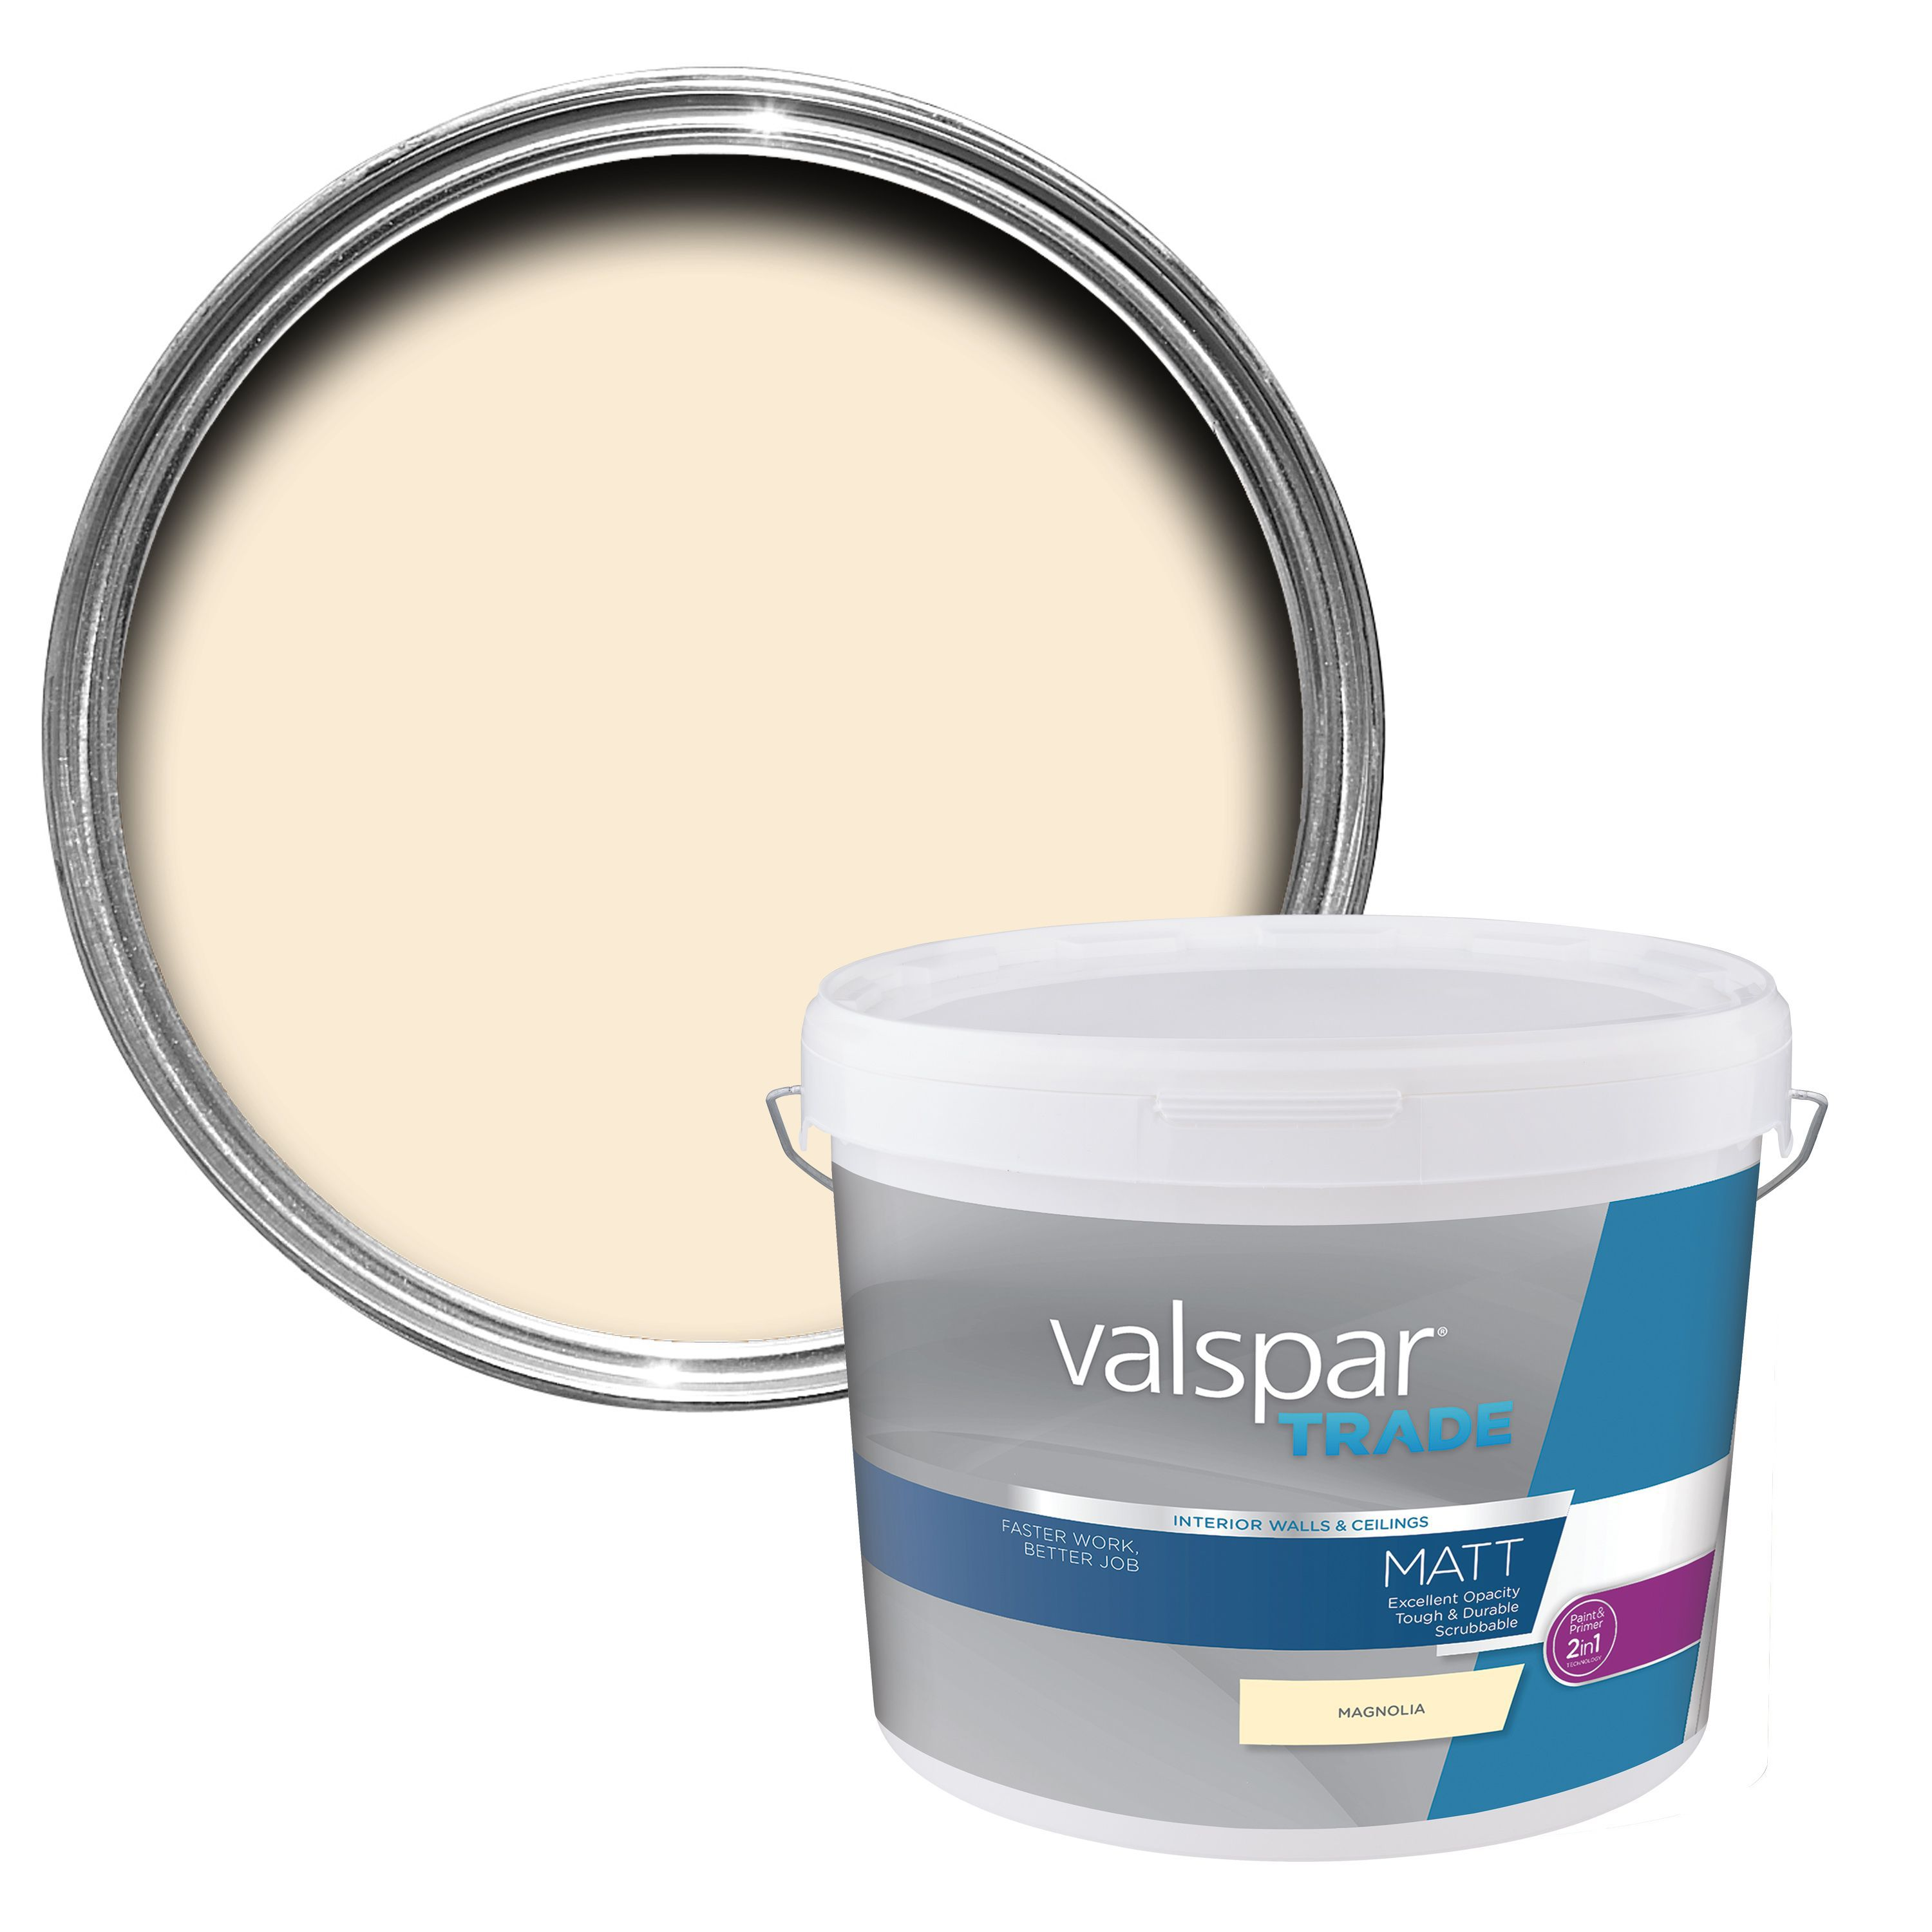 valspar trade magnolia matt wall ceiling paint 10l on valspar paint id=29807